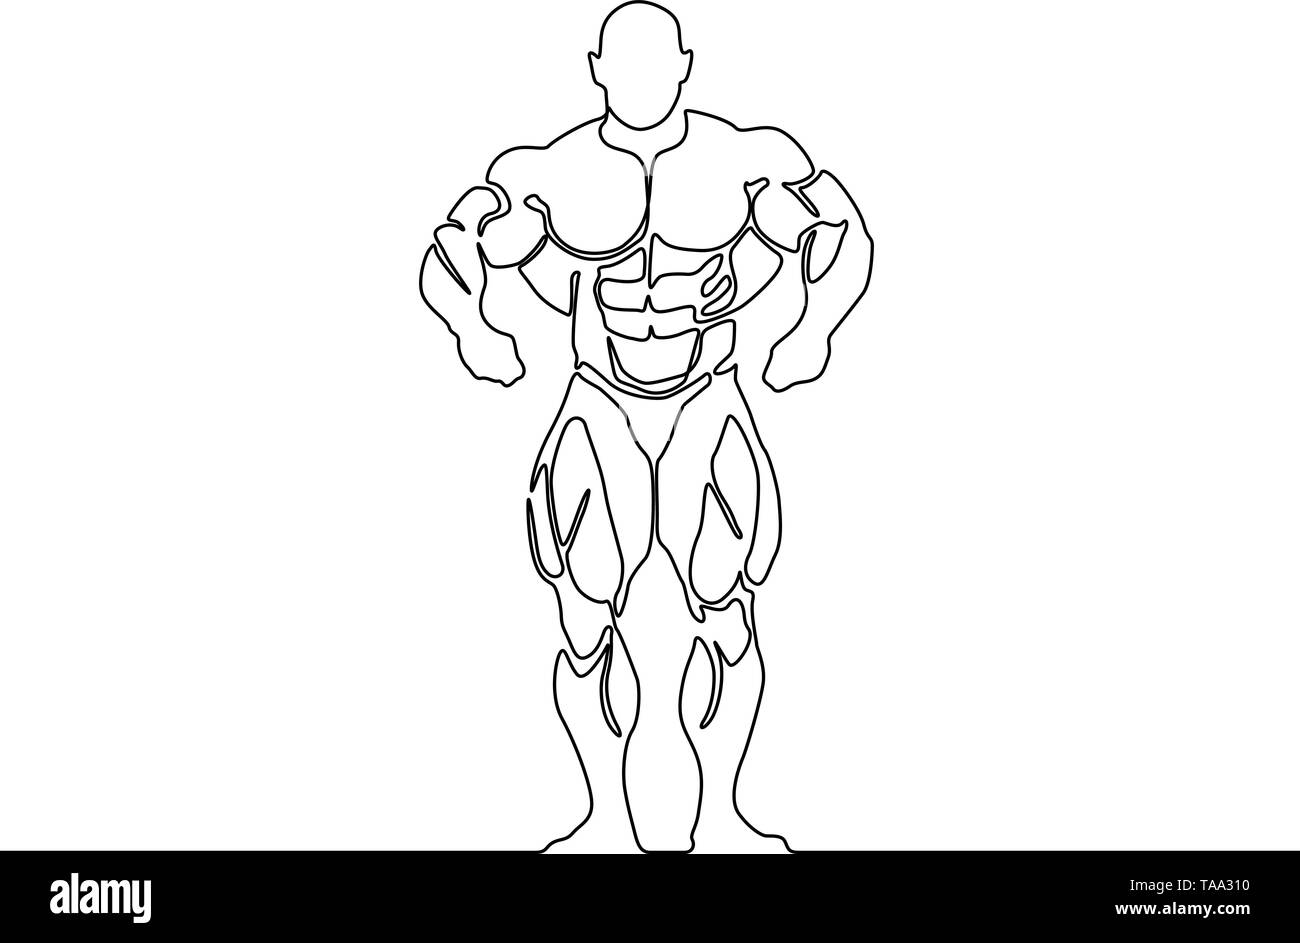 Continuous line bodybuilder. Vector illustration. - Stock Image